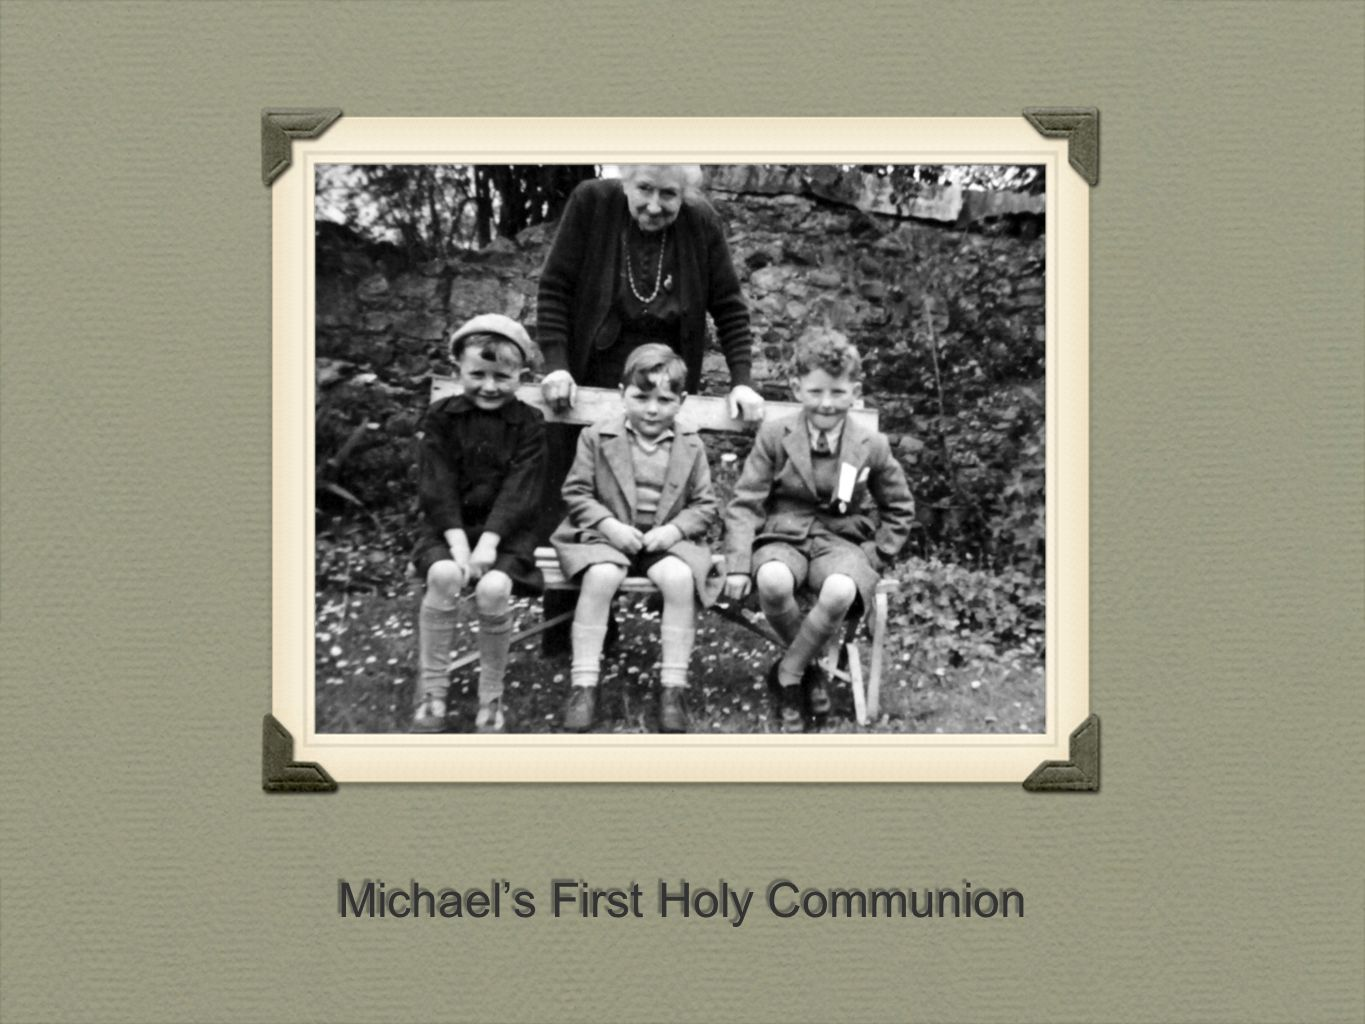 Michael's First Holy Communion